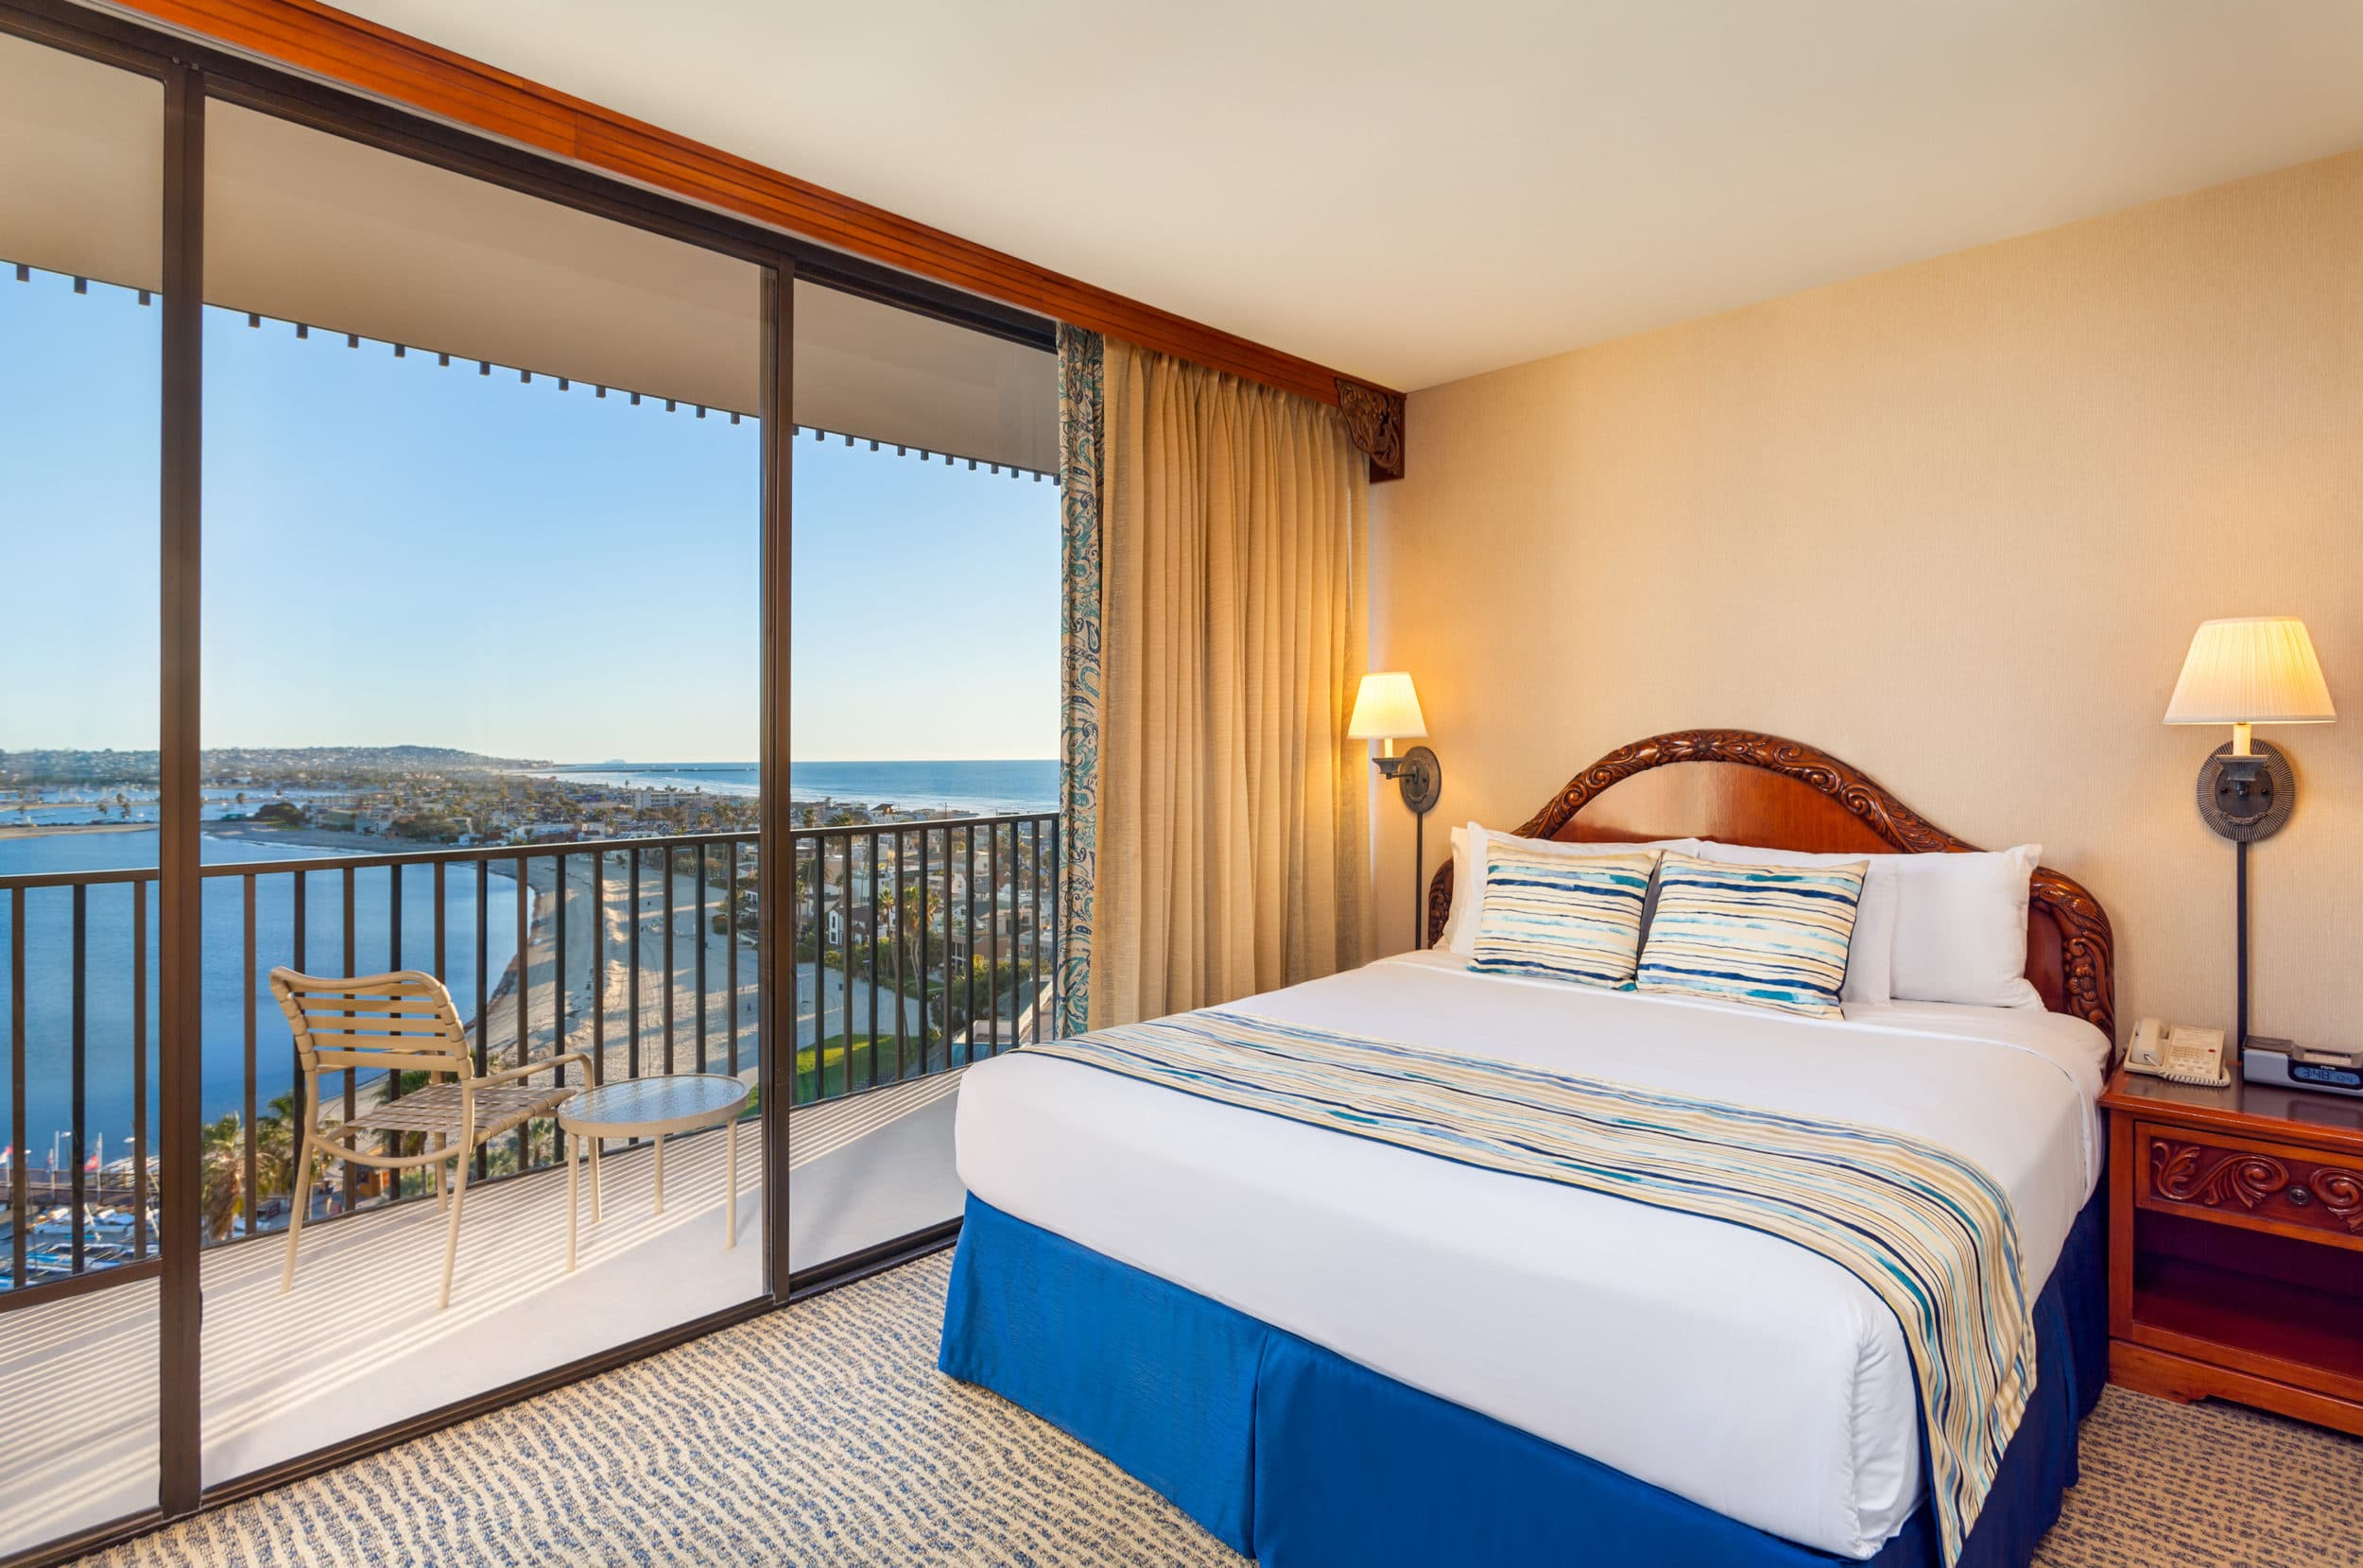 Bay View Suite at Catamaran Resort San Diego